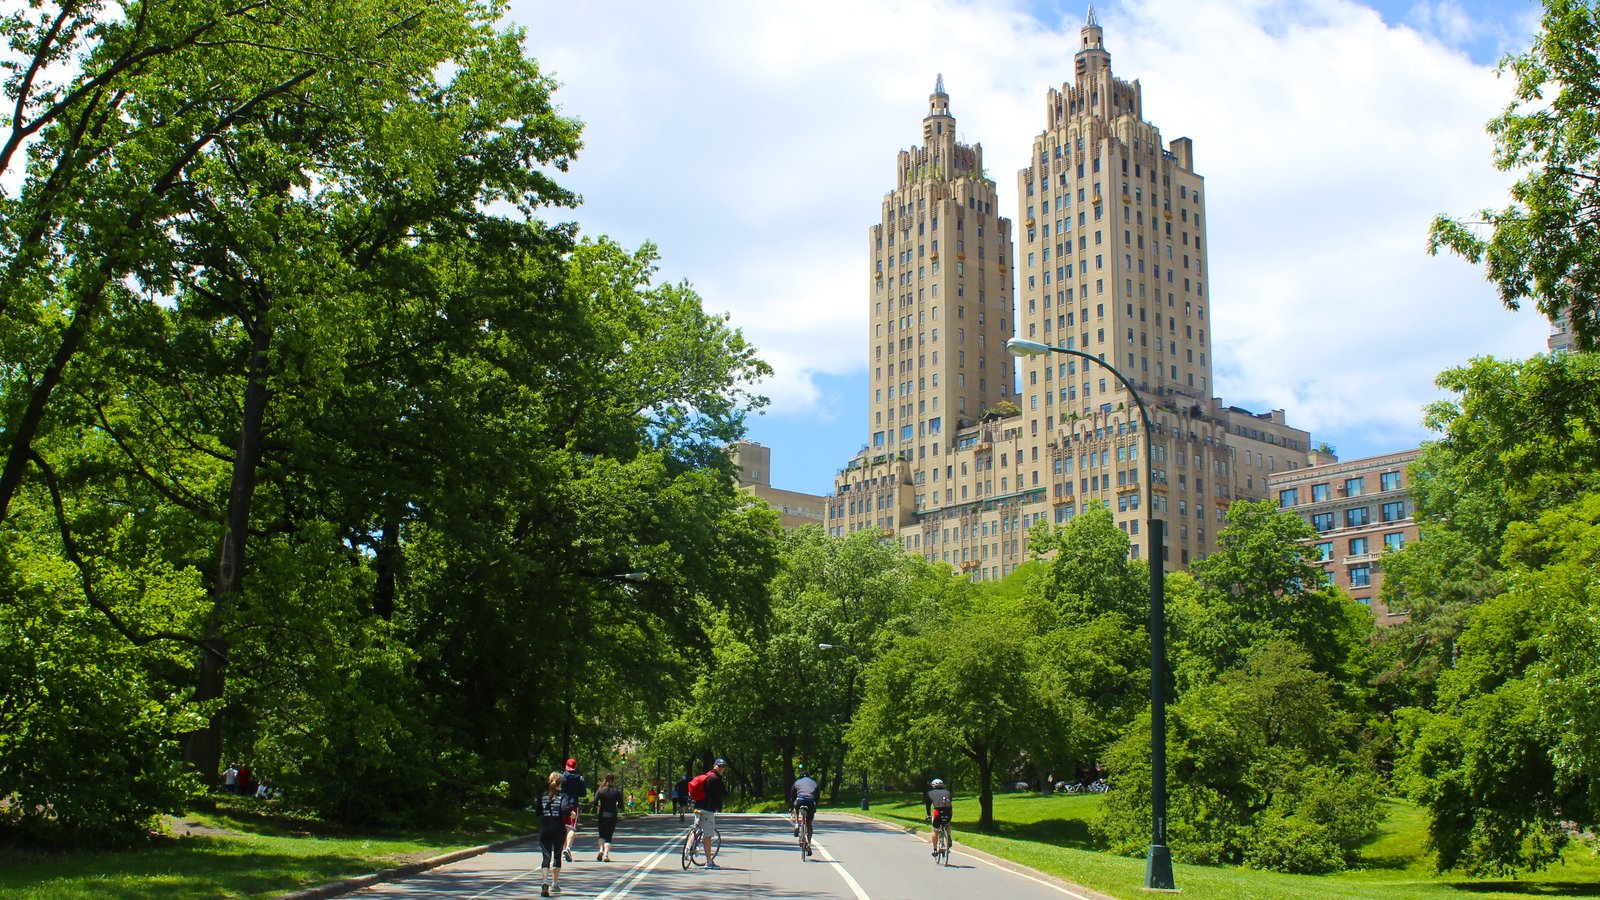 New York showing heritage architecture, cycling and a park